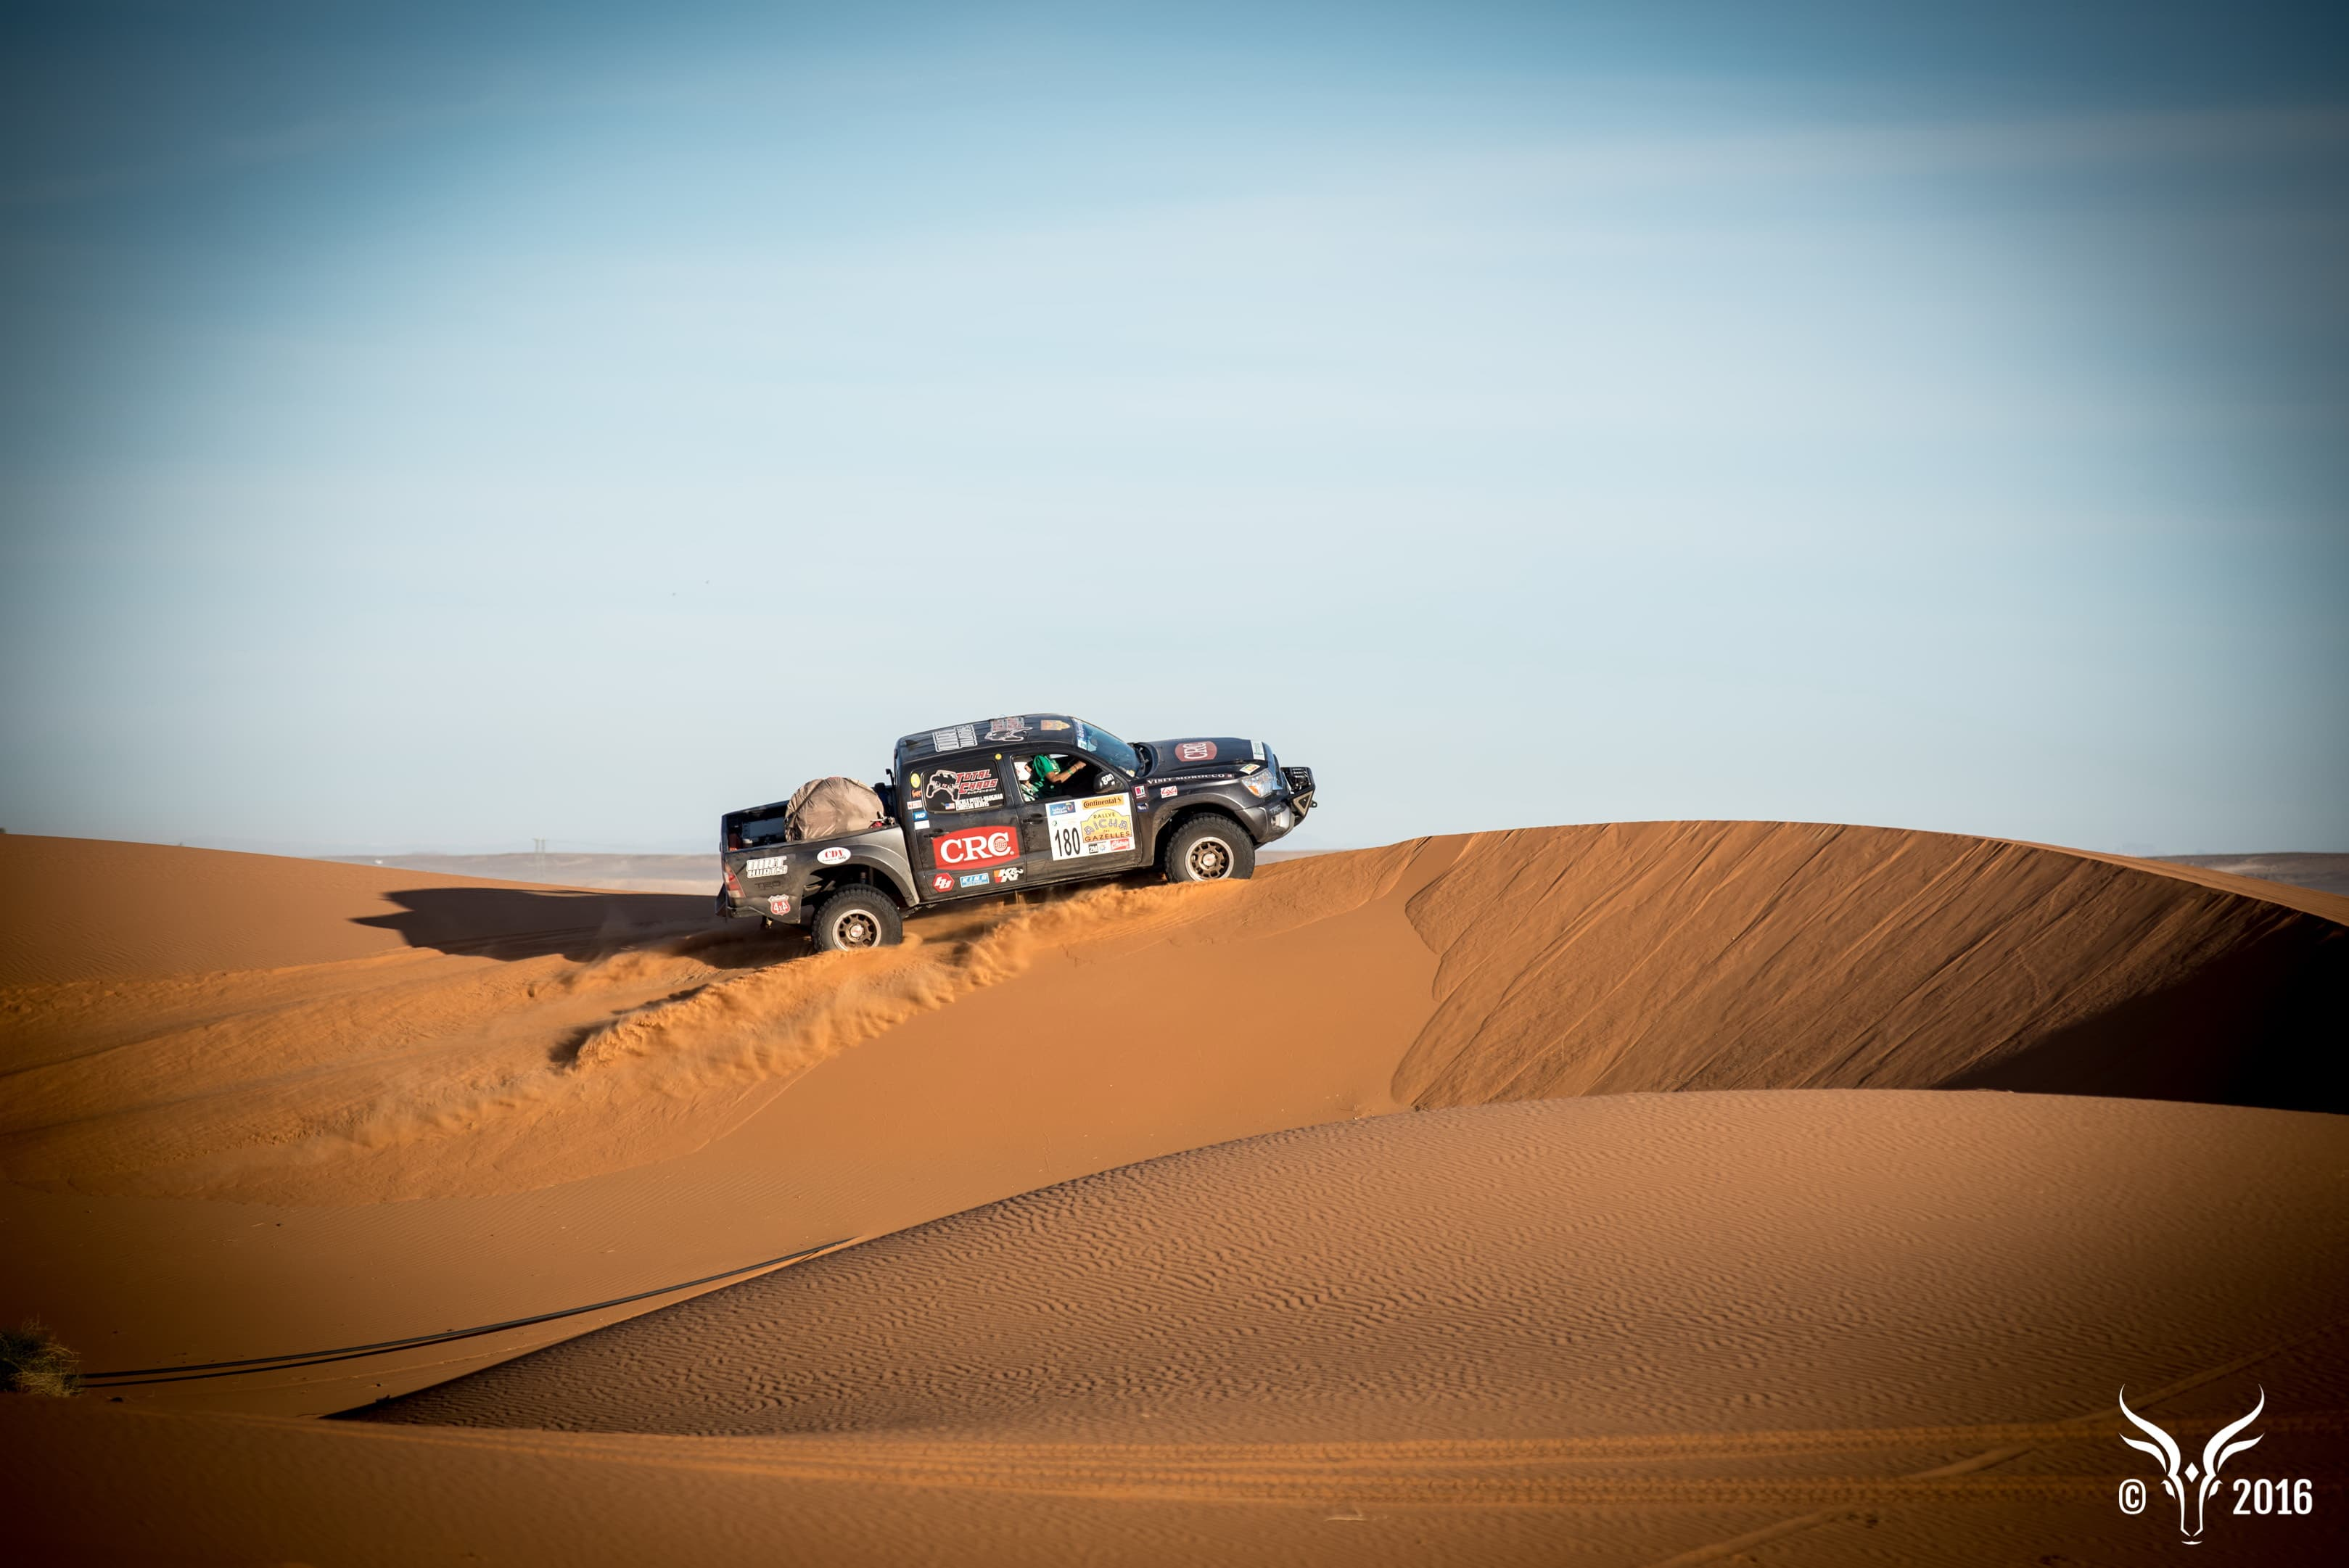 A completely off-road rally for women-only in the Moroccan desert. Photo by Rallye Aïcha des Gazelles du Maroc.